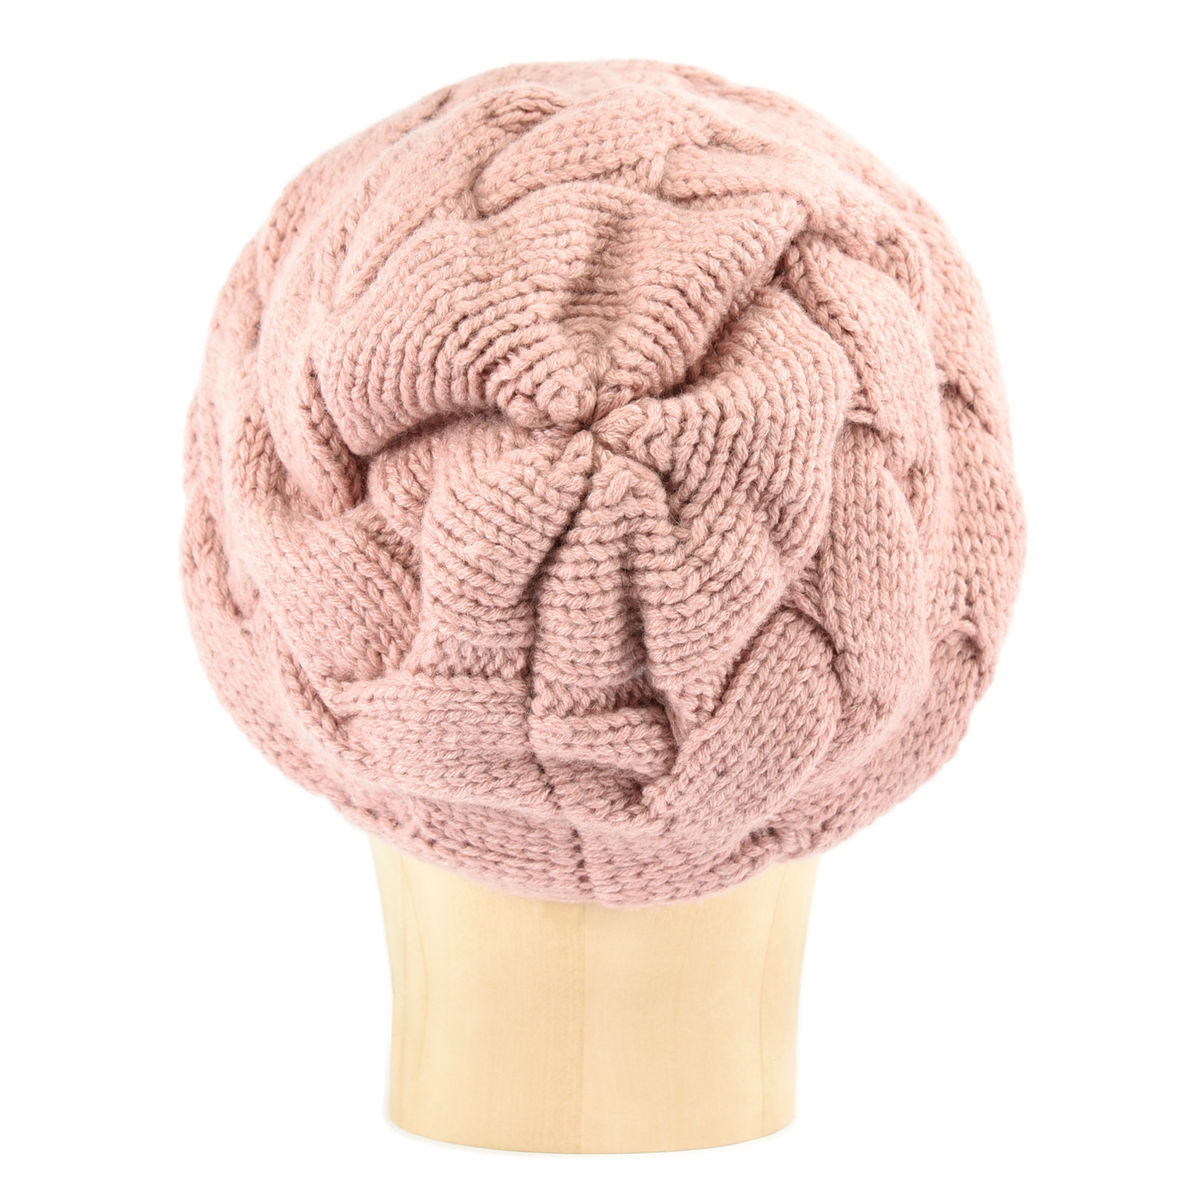 Chunky Braid Beanie - Dusty Rose - product images  of